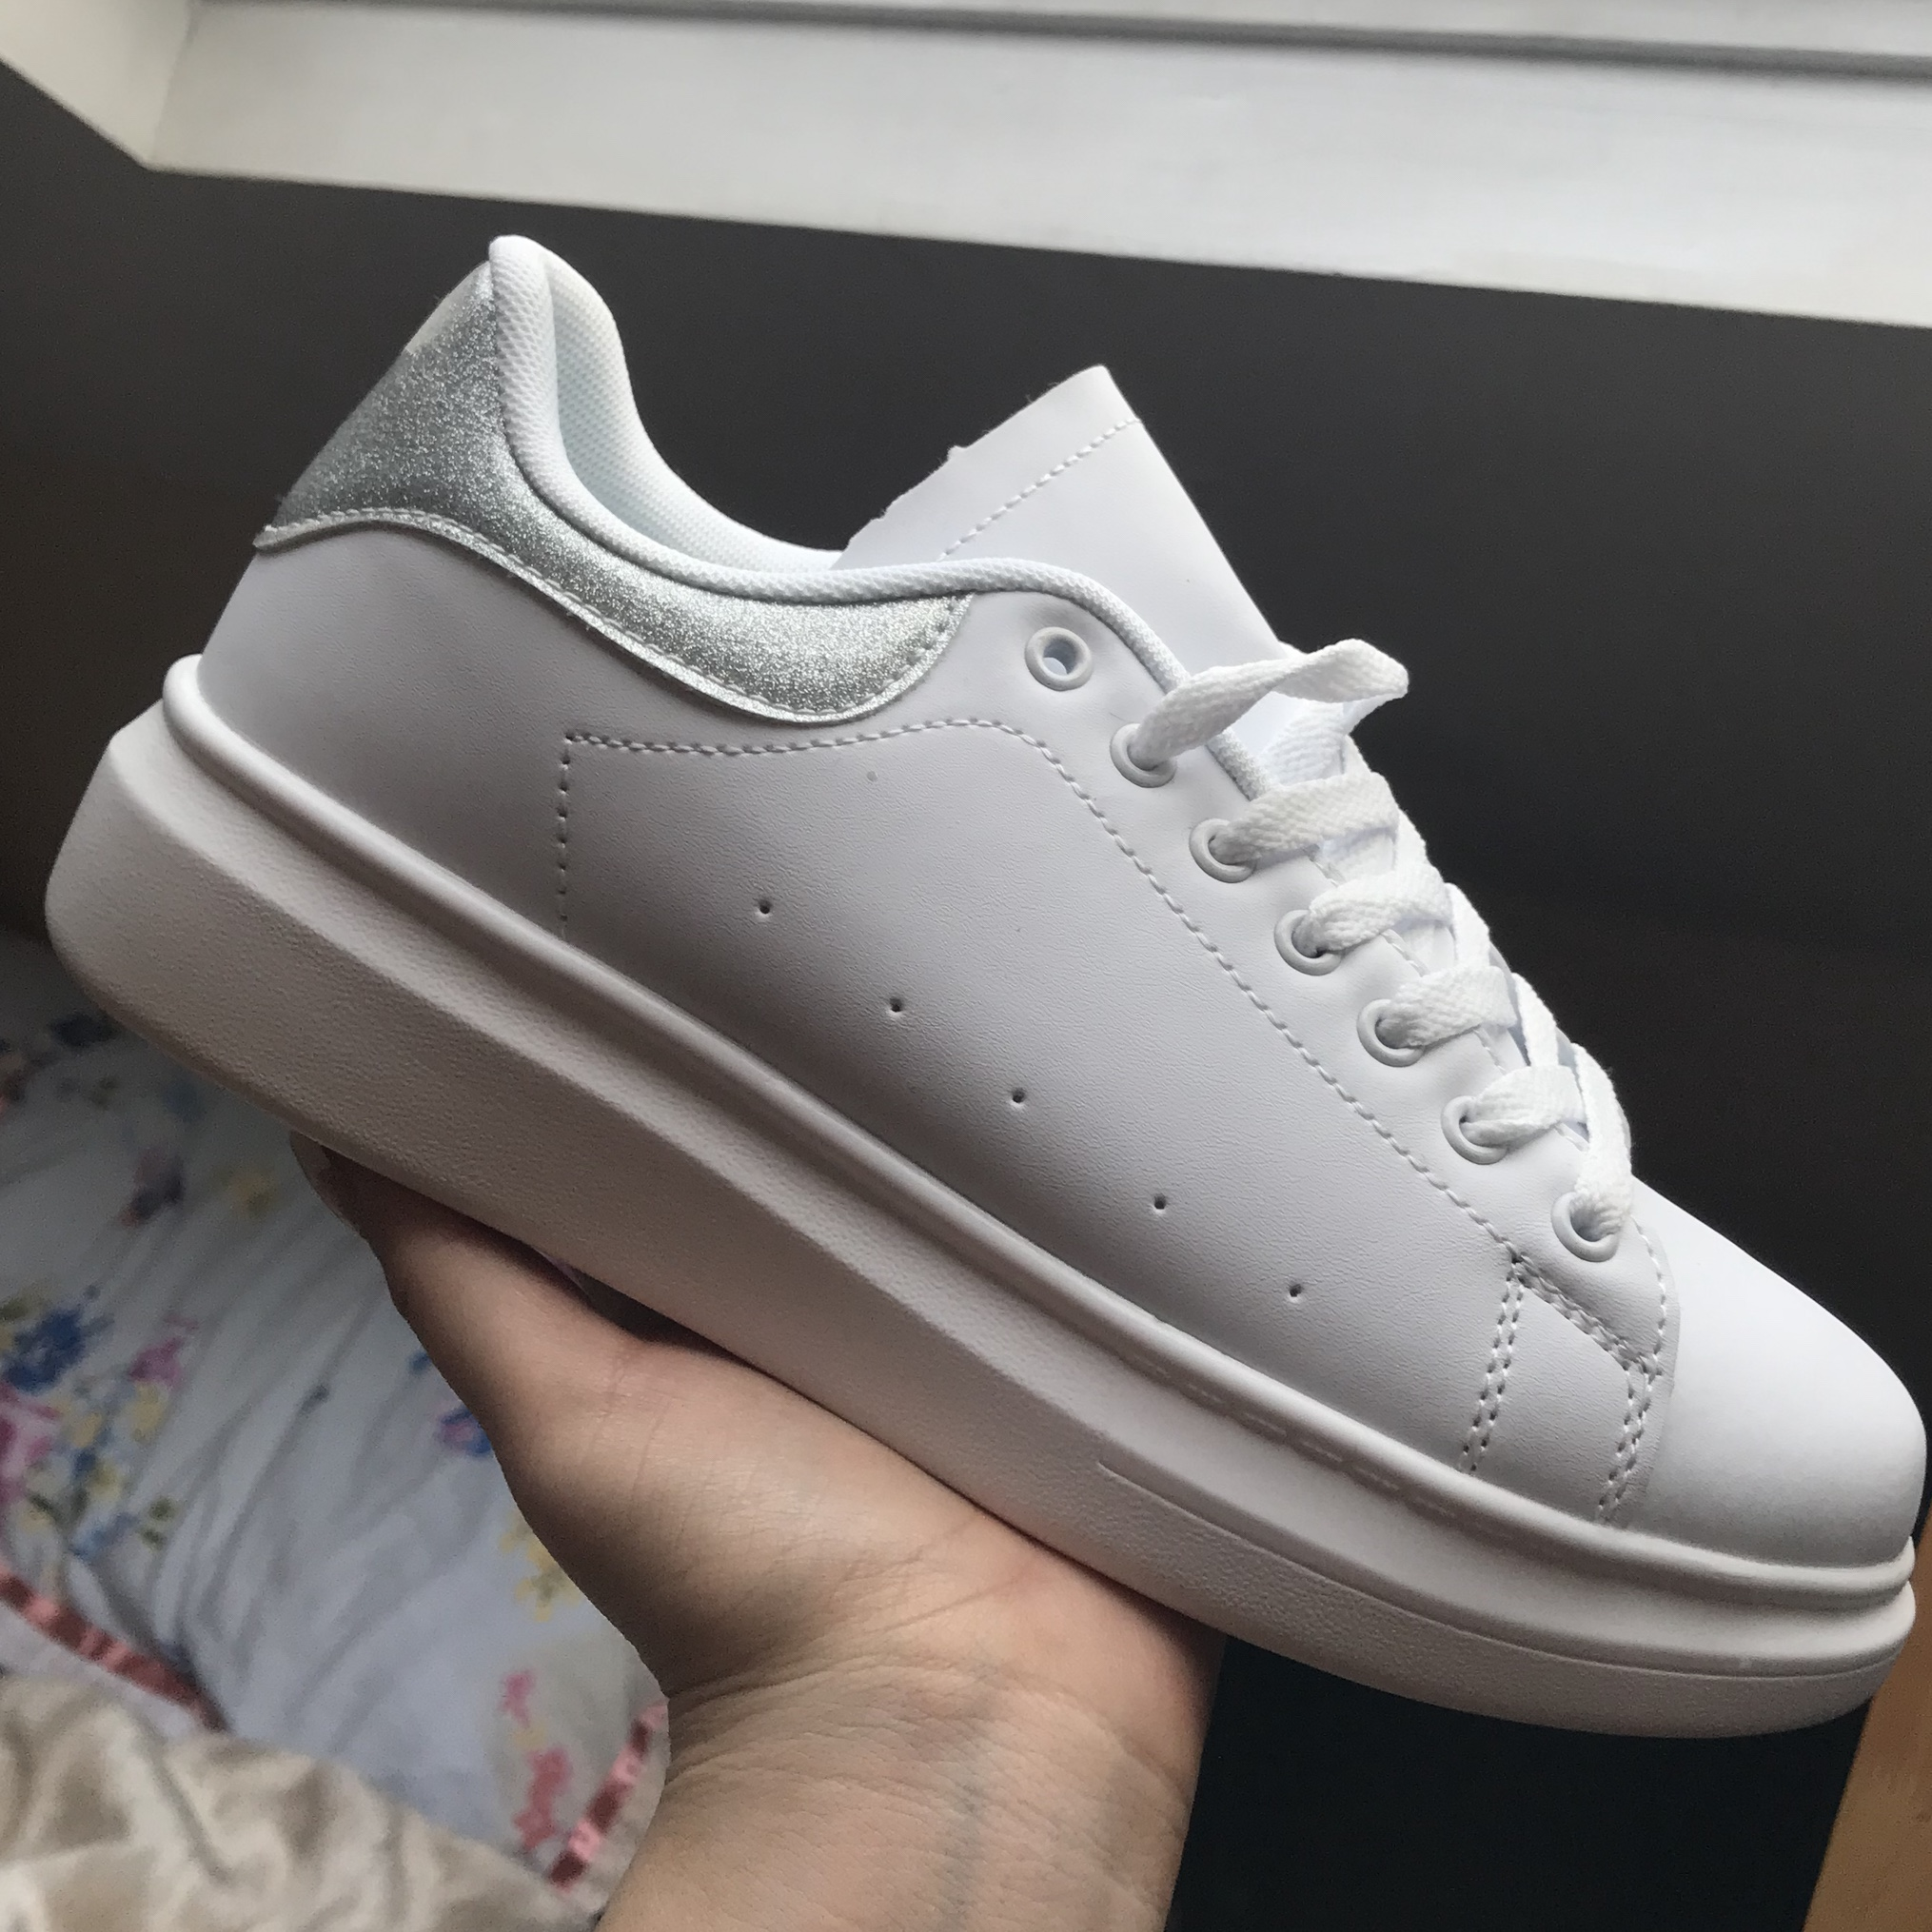 2872e5eff58 White Fake Alexander Mcqueen-style trainers in UK... - Depop